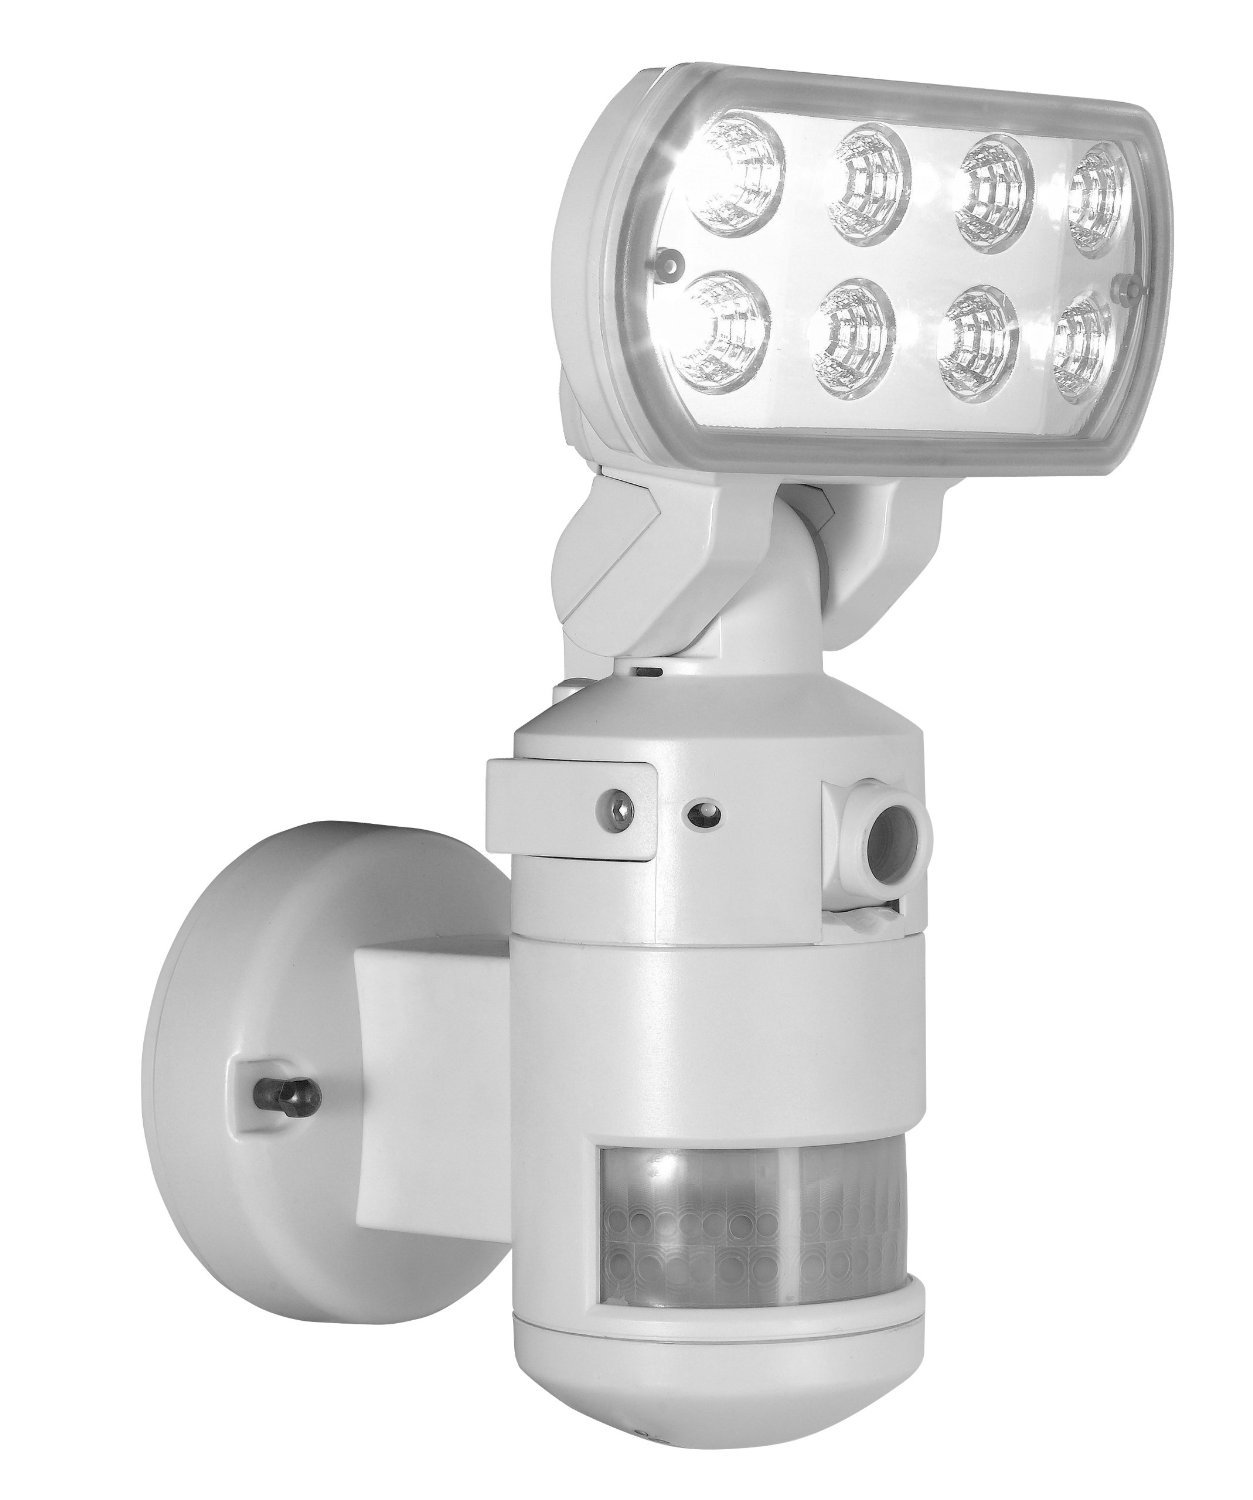 NightWatcher Robotic LED Flood Light With Video Camera